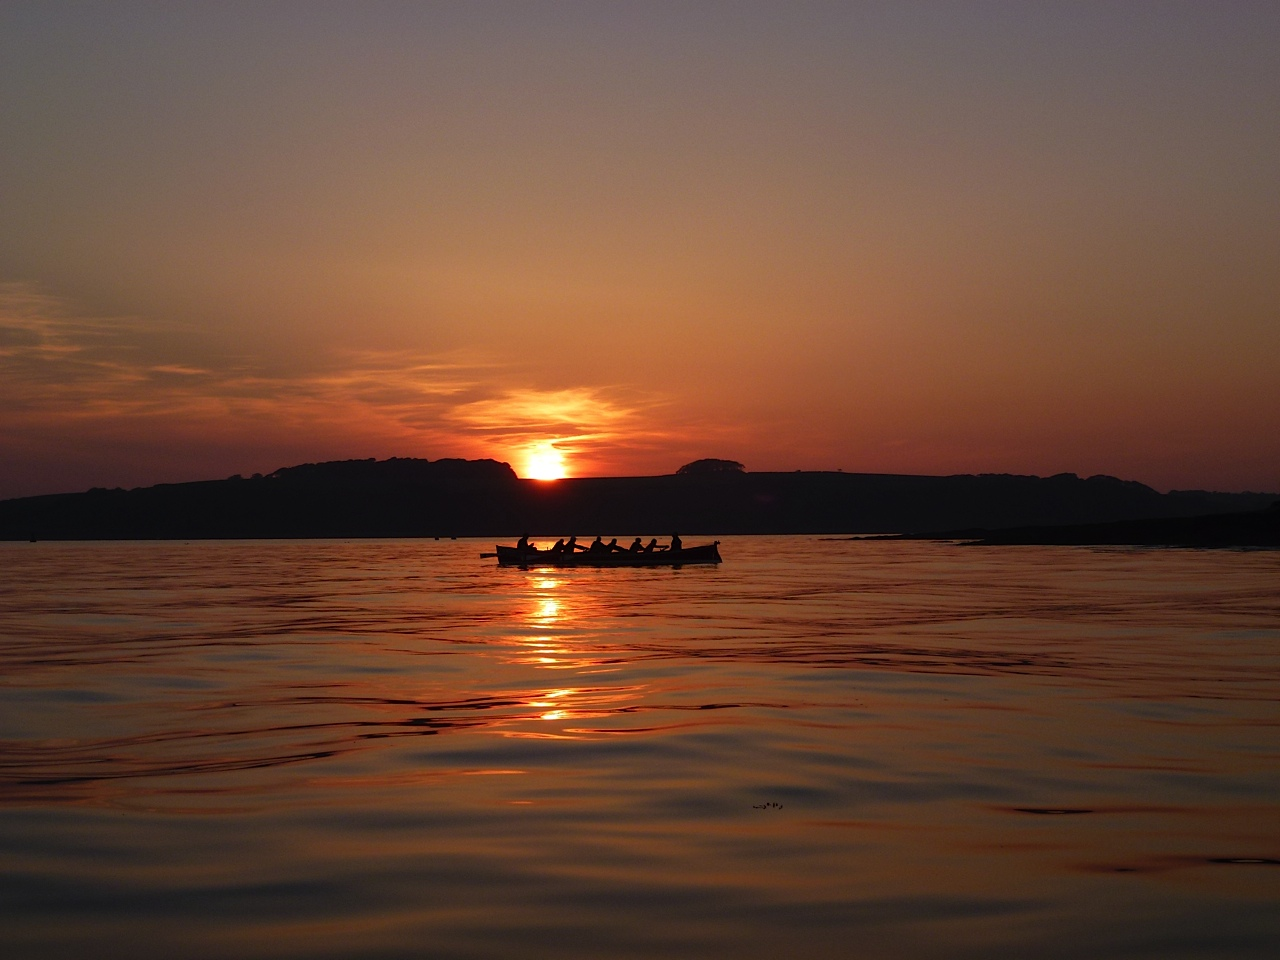 Social Rowers Enjoy Evening to St. Mawes